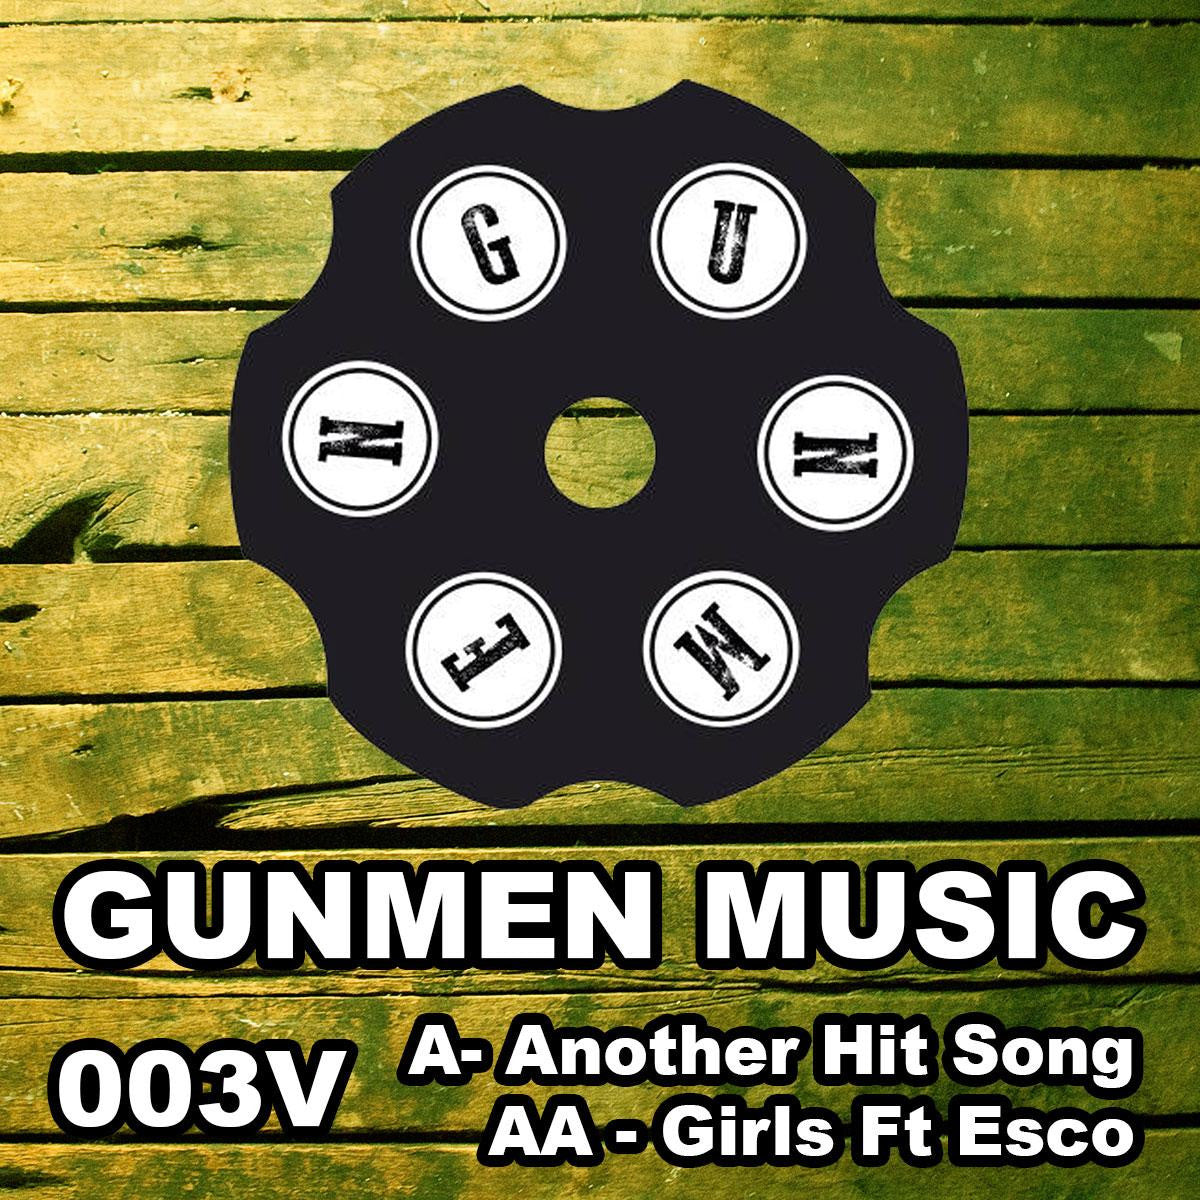 Gunmen - Another Hit Song / Girls , Vinyl - Gunmen, Unearthed Sounds